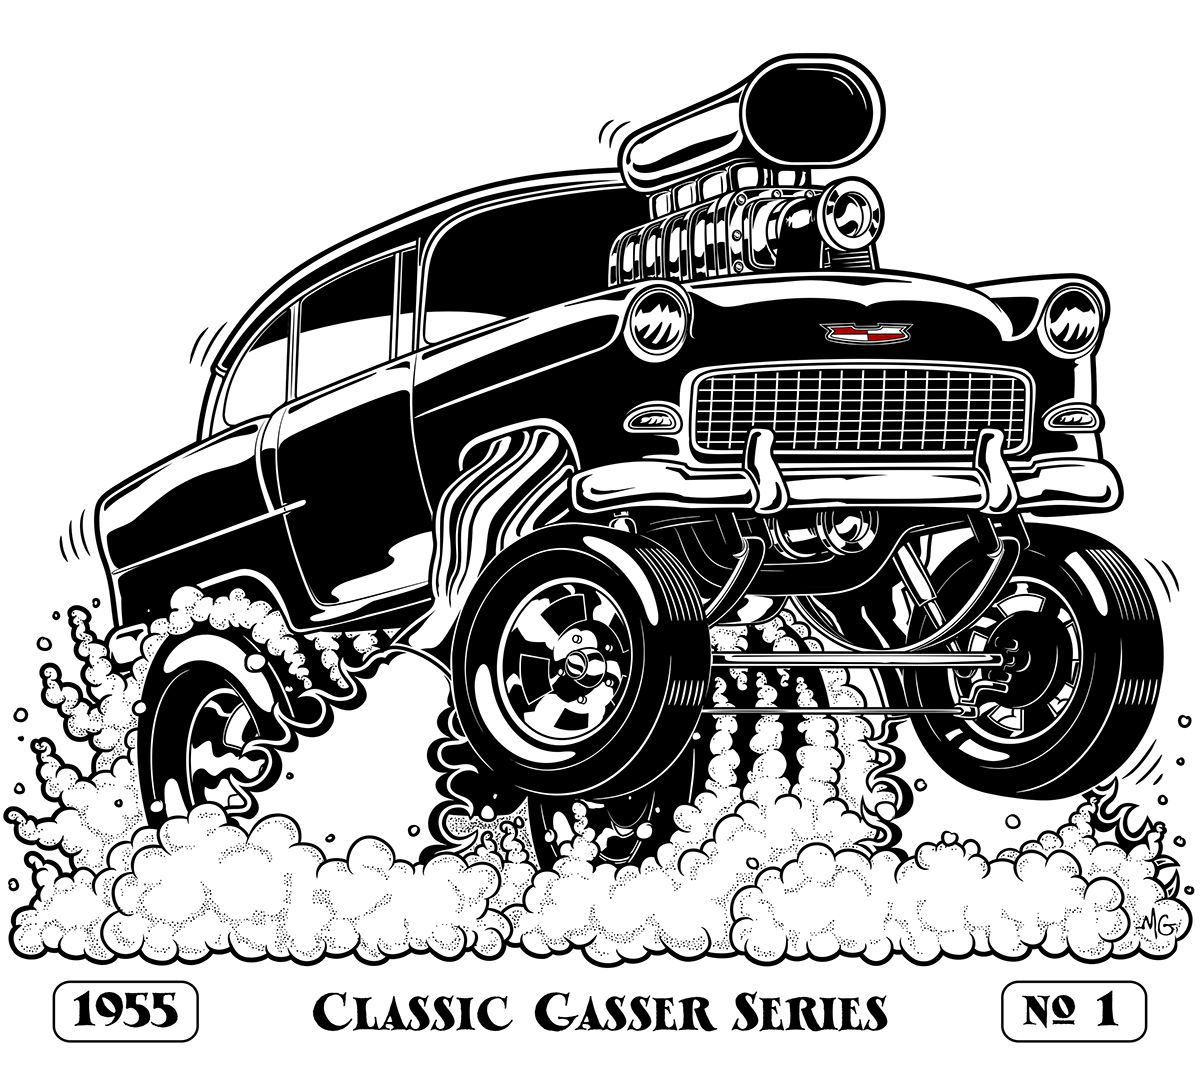 1965 chevelle ss wiring diagram database 2010 Chevrolet Monte Carlo SS 55 chevy gasser on behance chevy toons chevy car drawings y 1968 chevelle ss 1965 chevelle ss